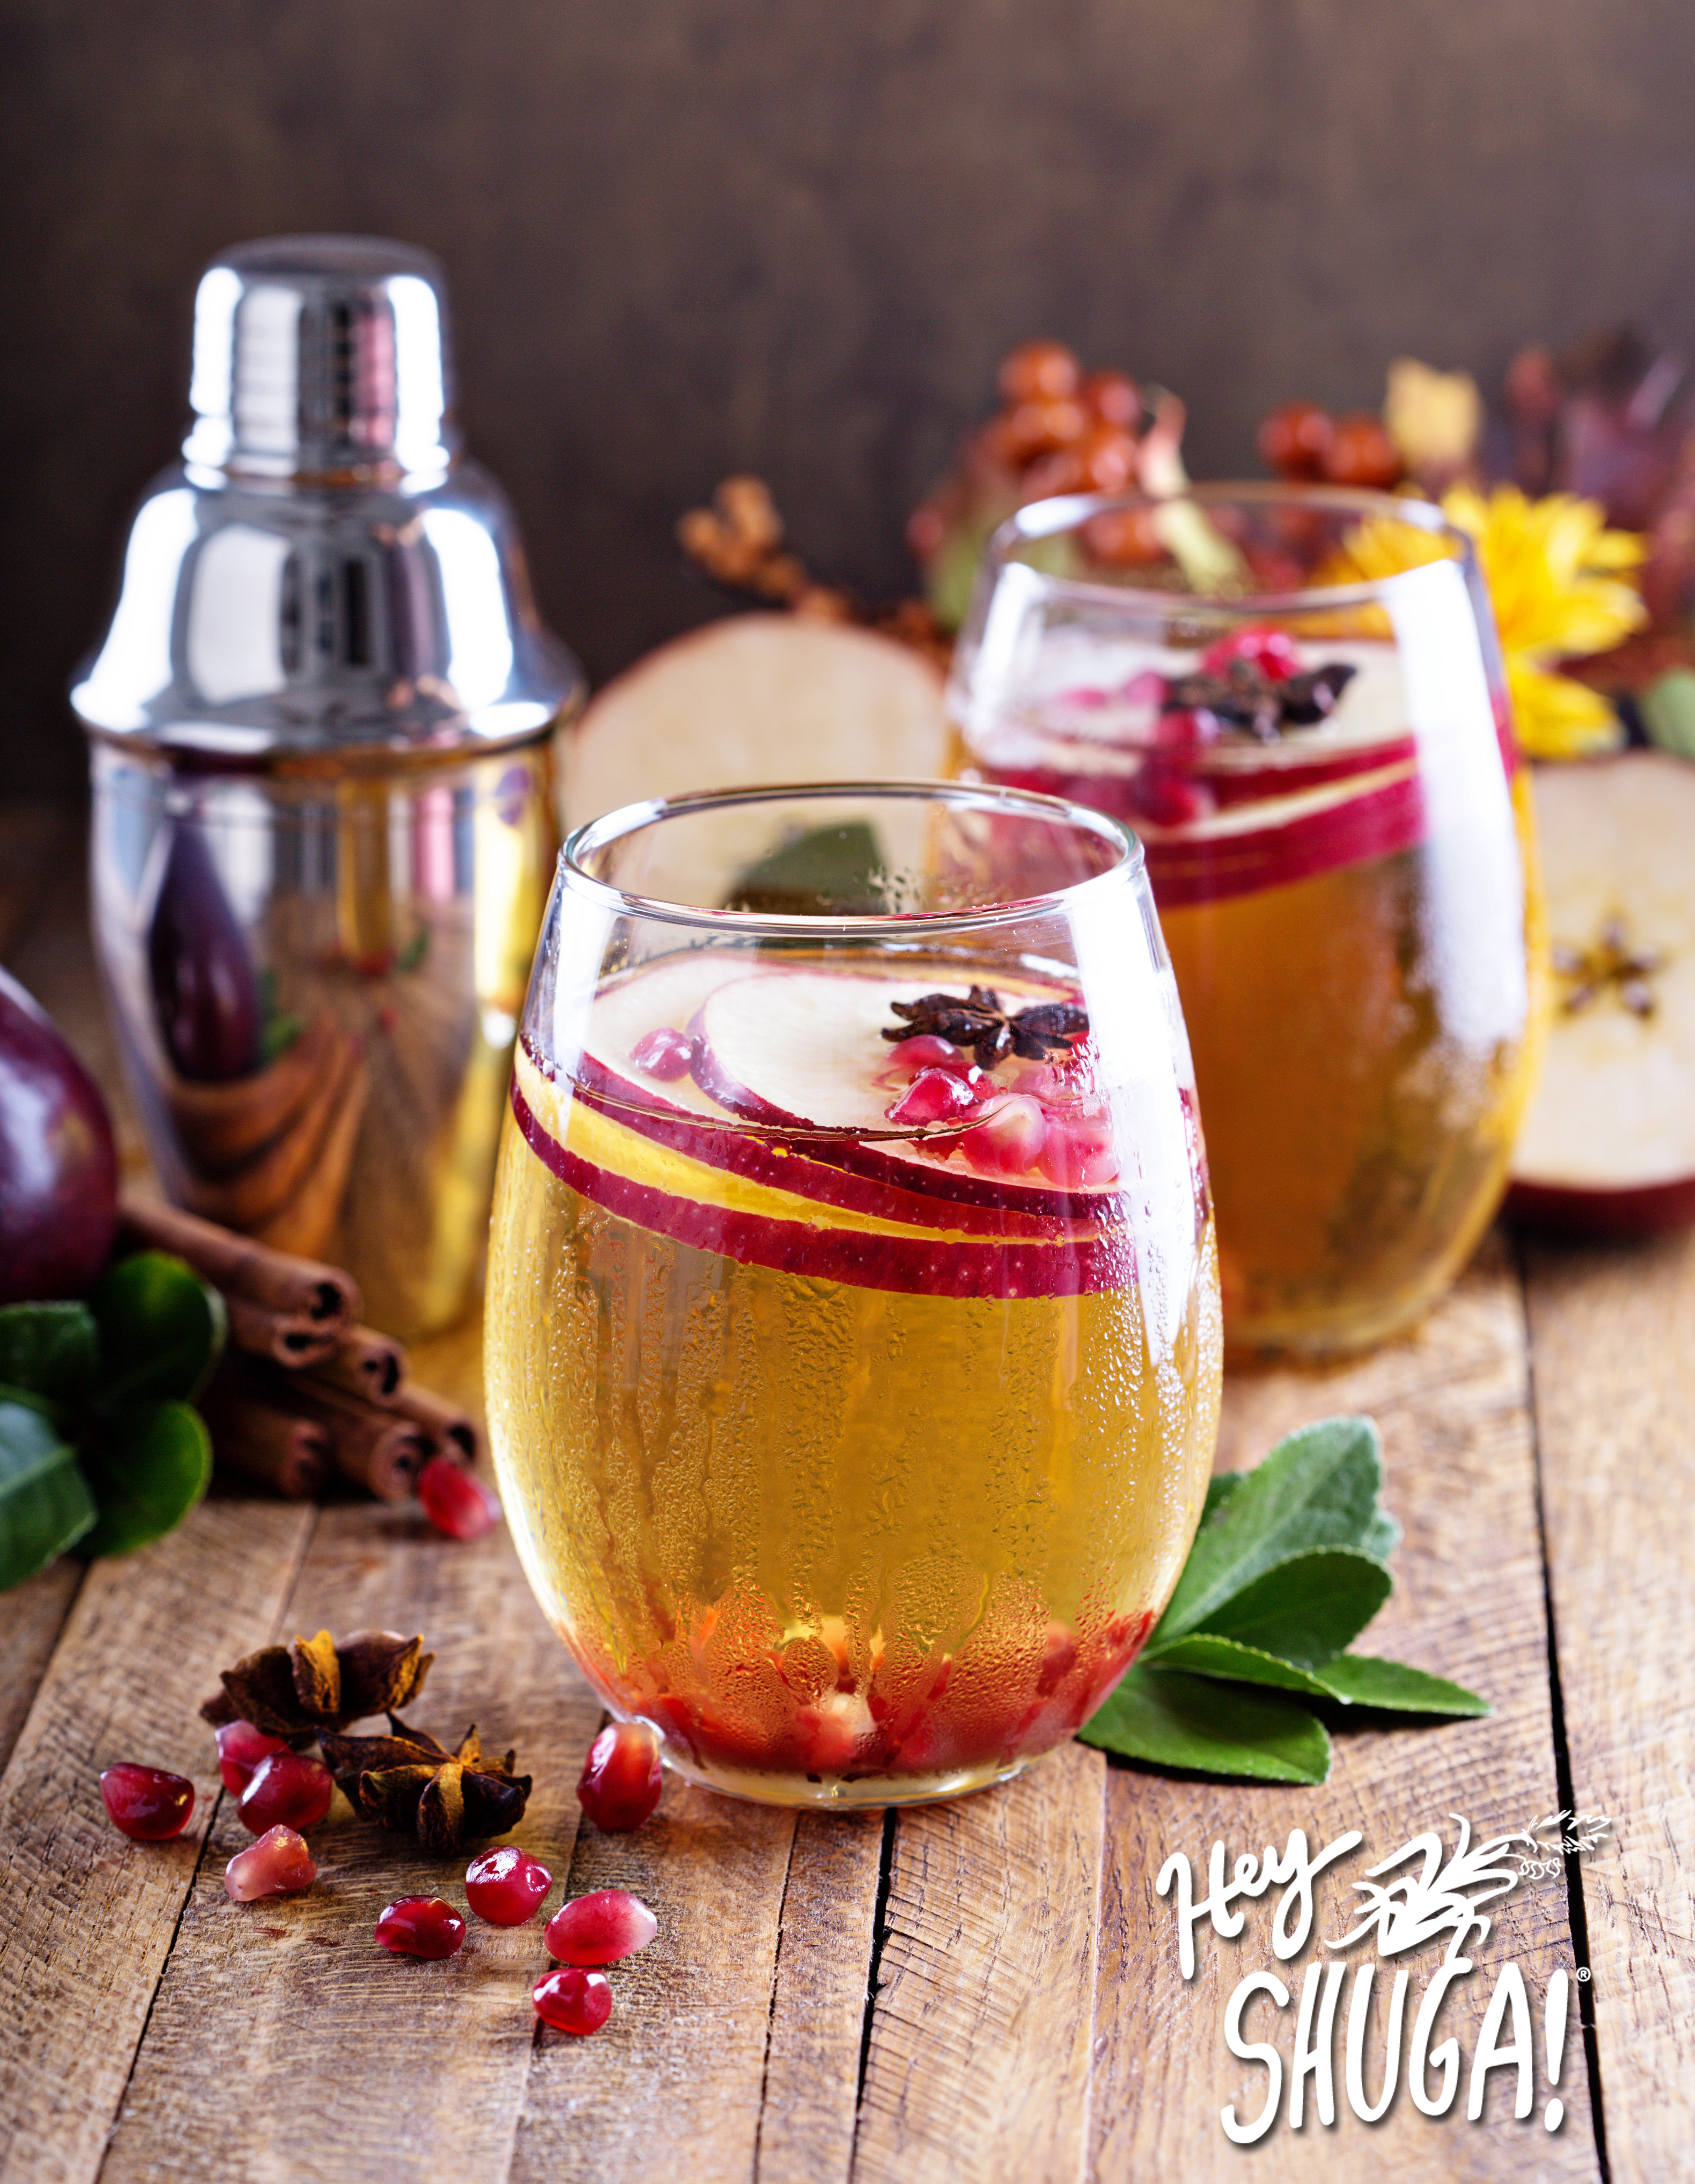 Apple cider fall cocktail with spices and pomegranate